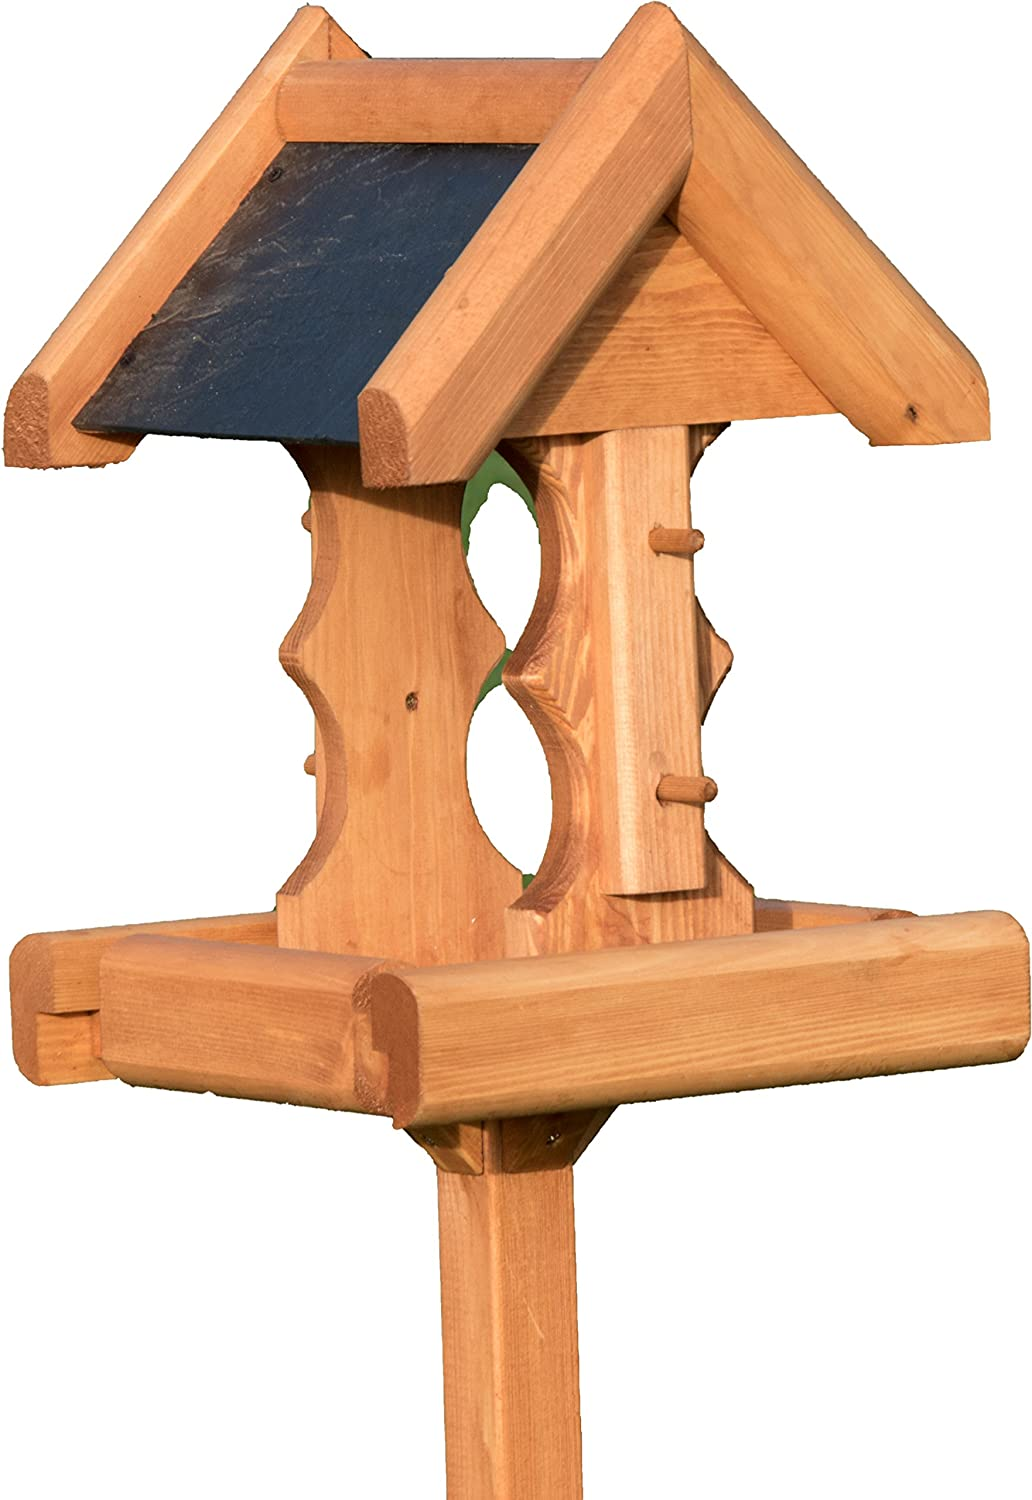 Riverside Woodcraft Woodland Bird Table With Anti Bacteria Coating